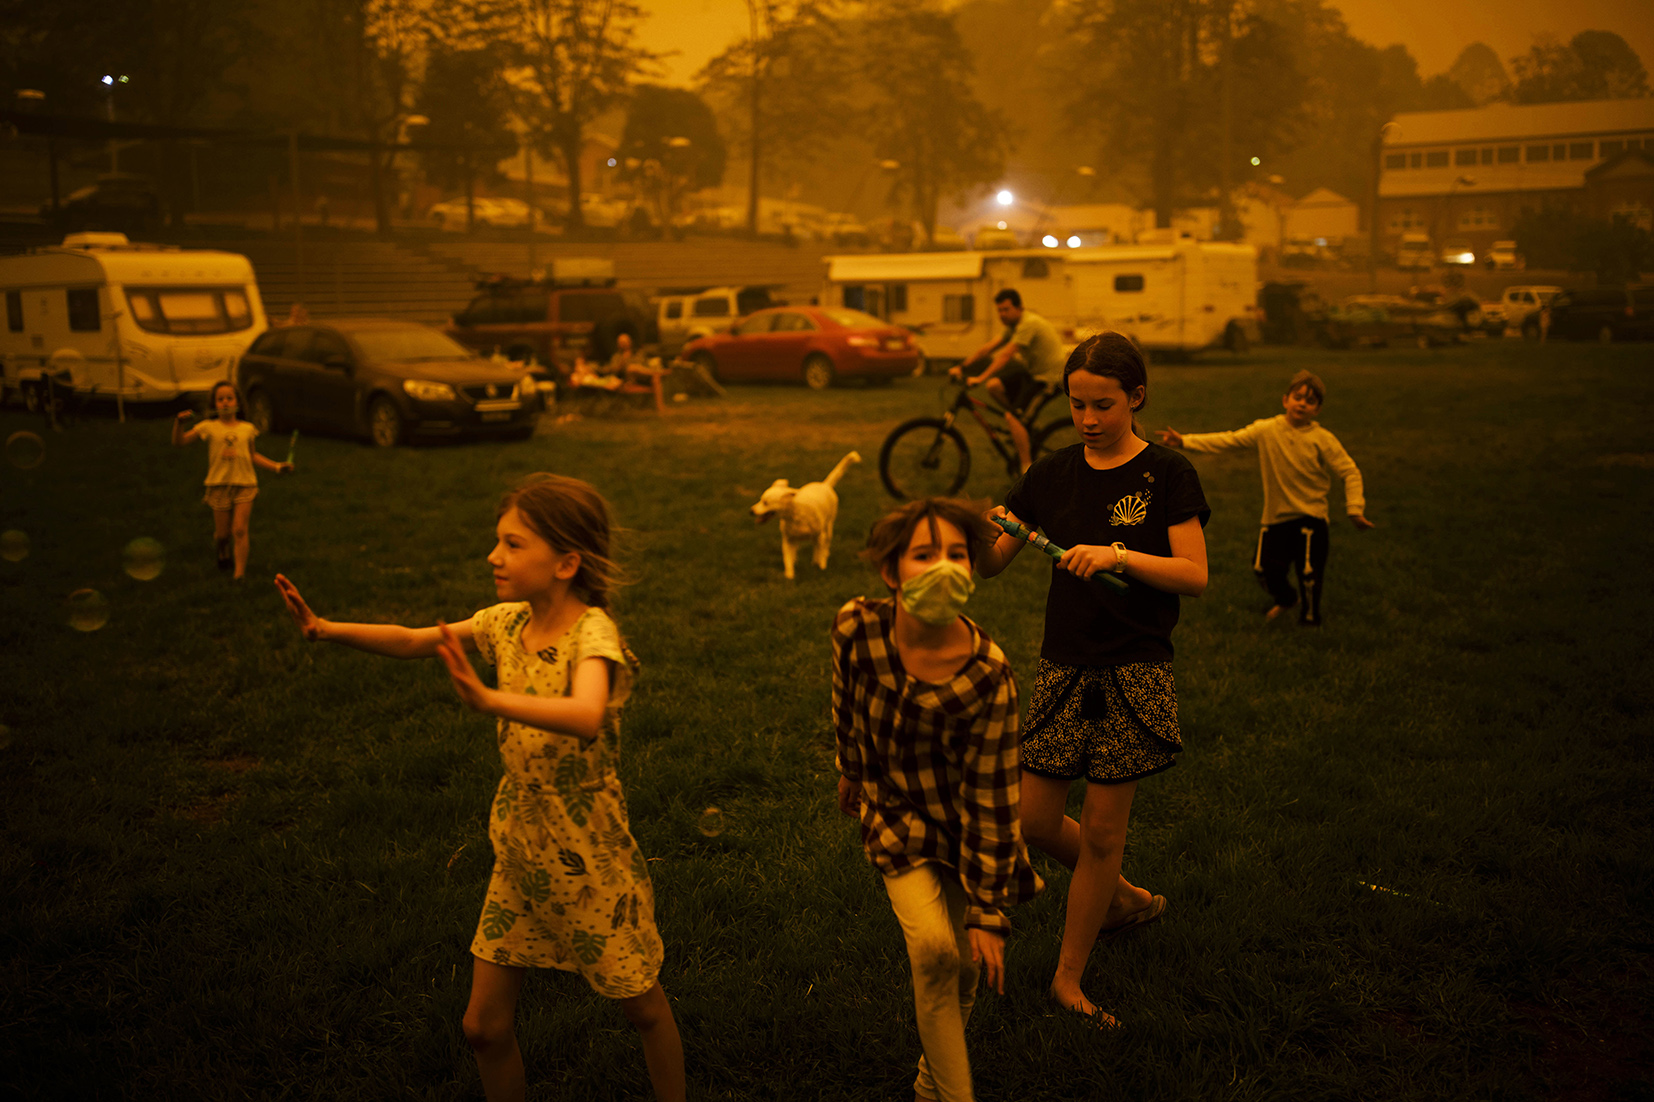 Photograph featuring children playing on a sports field. One wears a face mask. The sky and light are tinged orange with smoke.